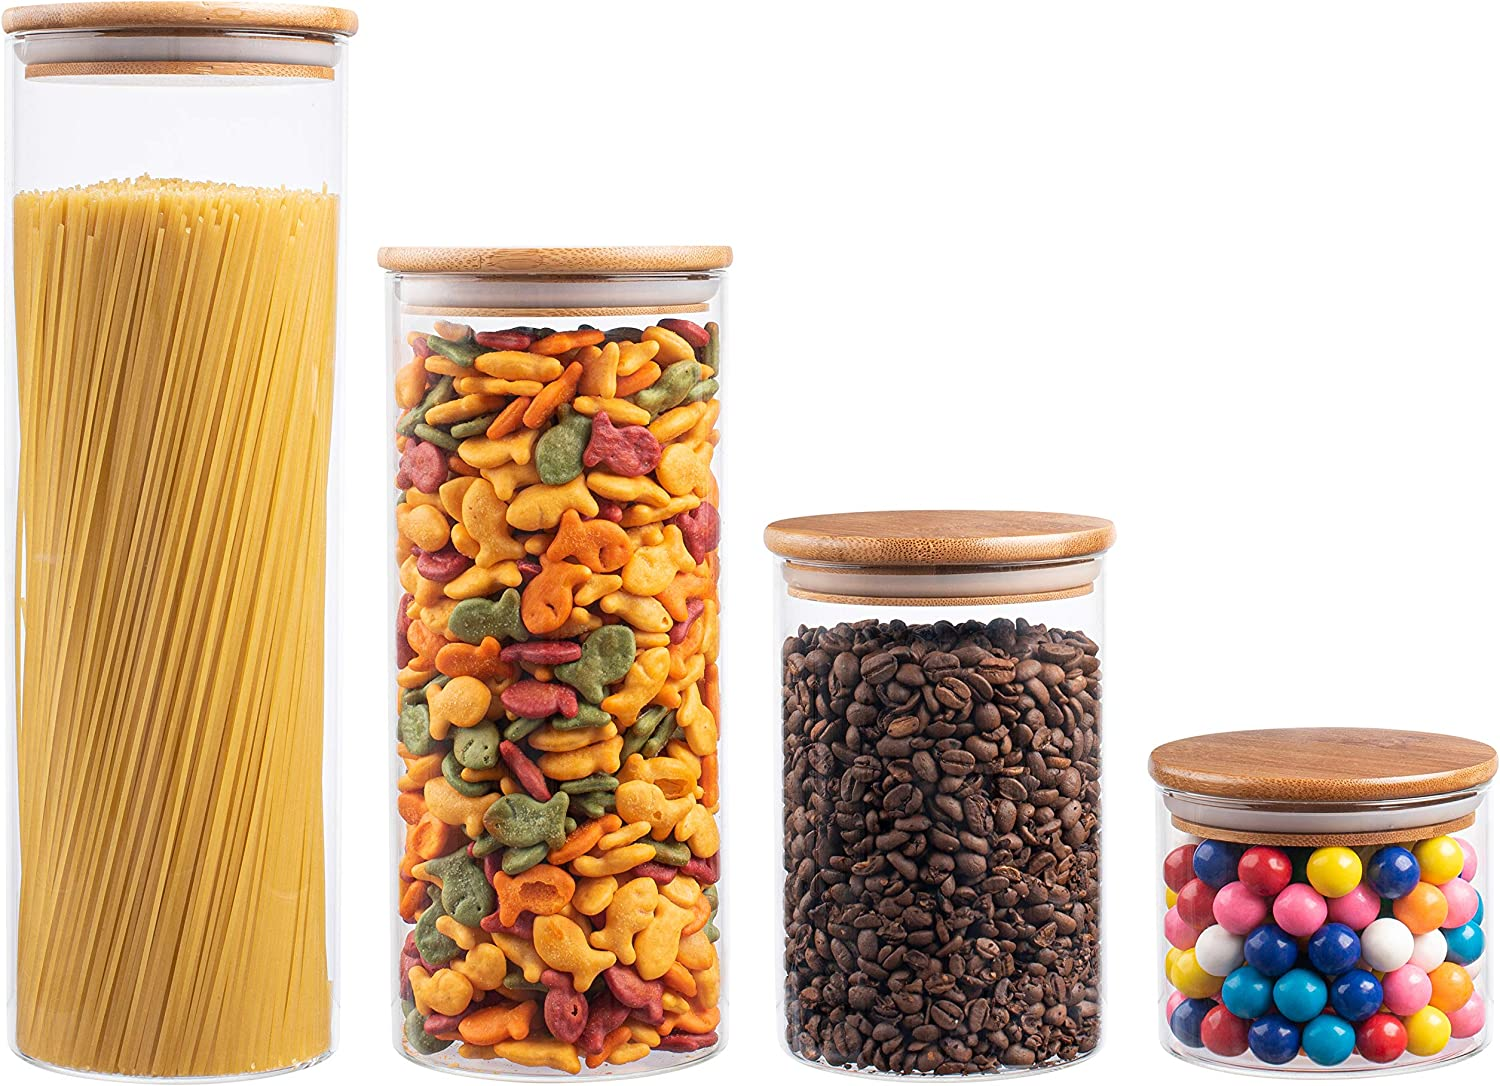 EatNeat 4-Piece Beautiful Glass Kitchen Canister Set with Airtight Bamboo Lids, Round Dry Food Storage Containers